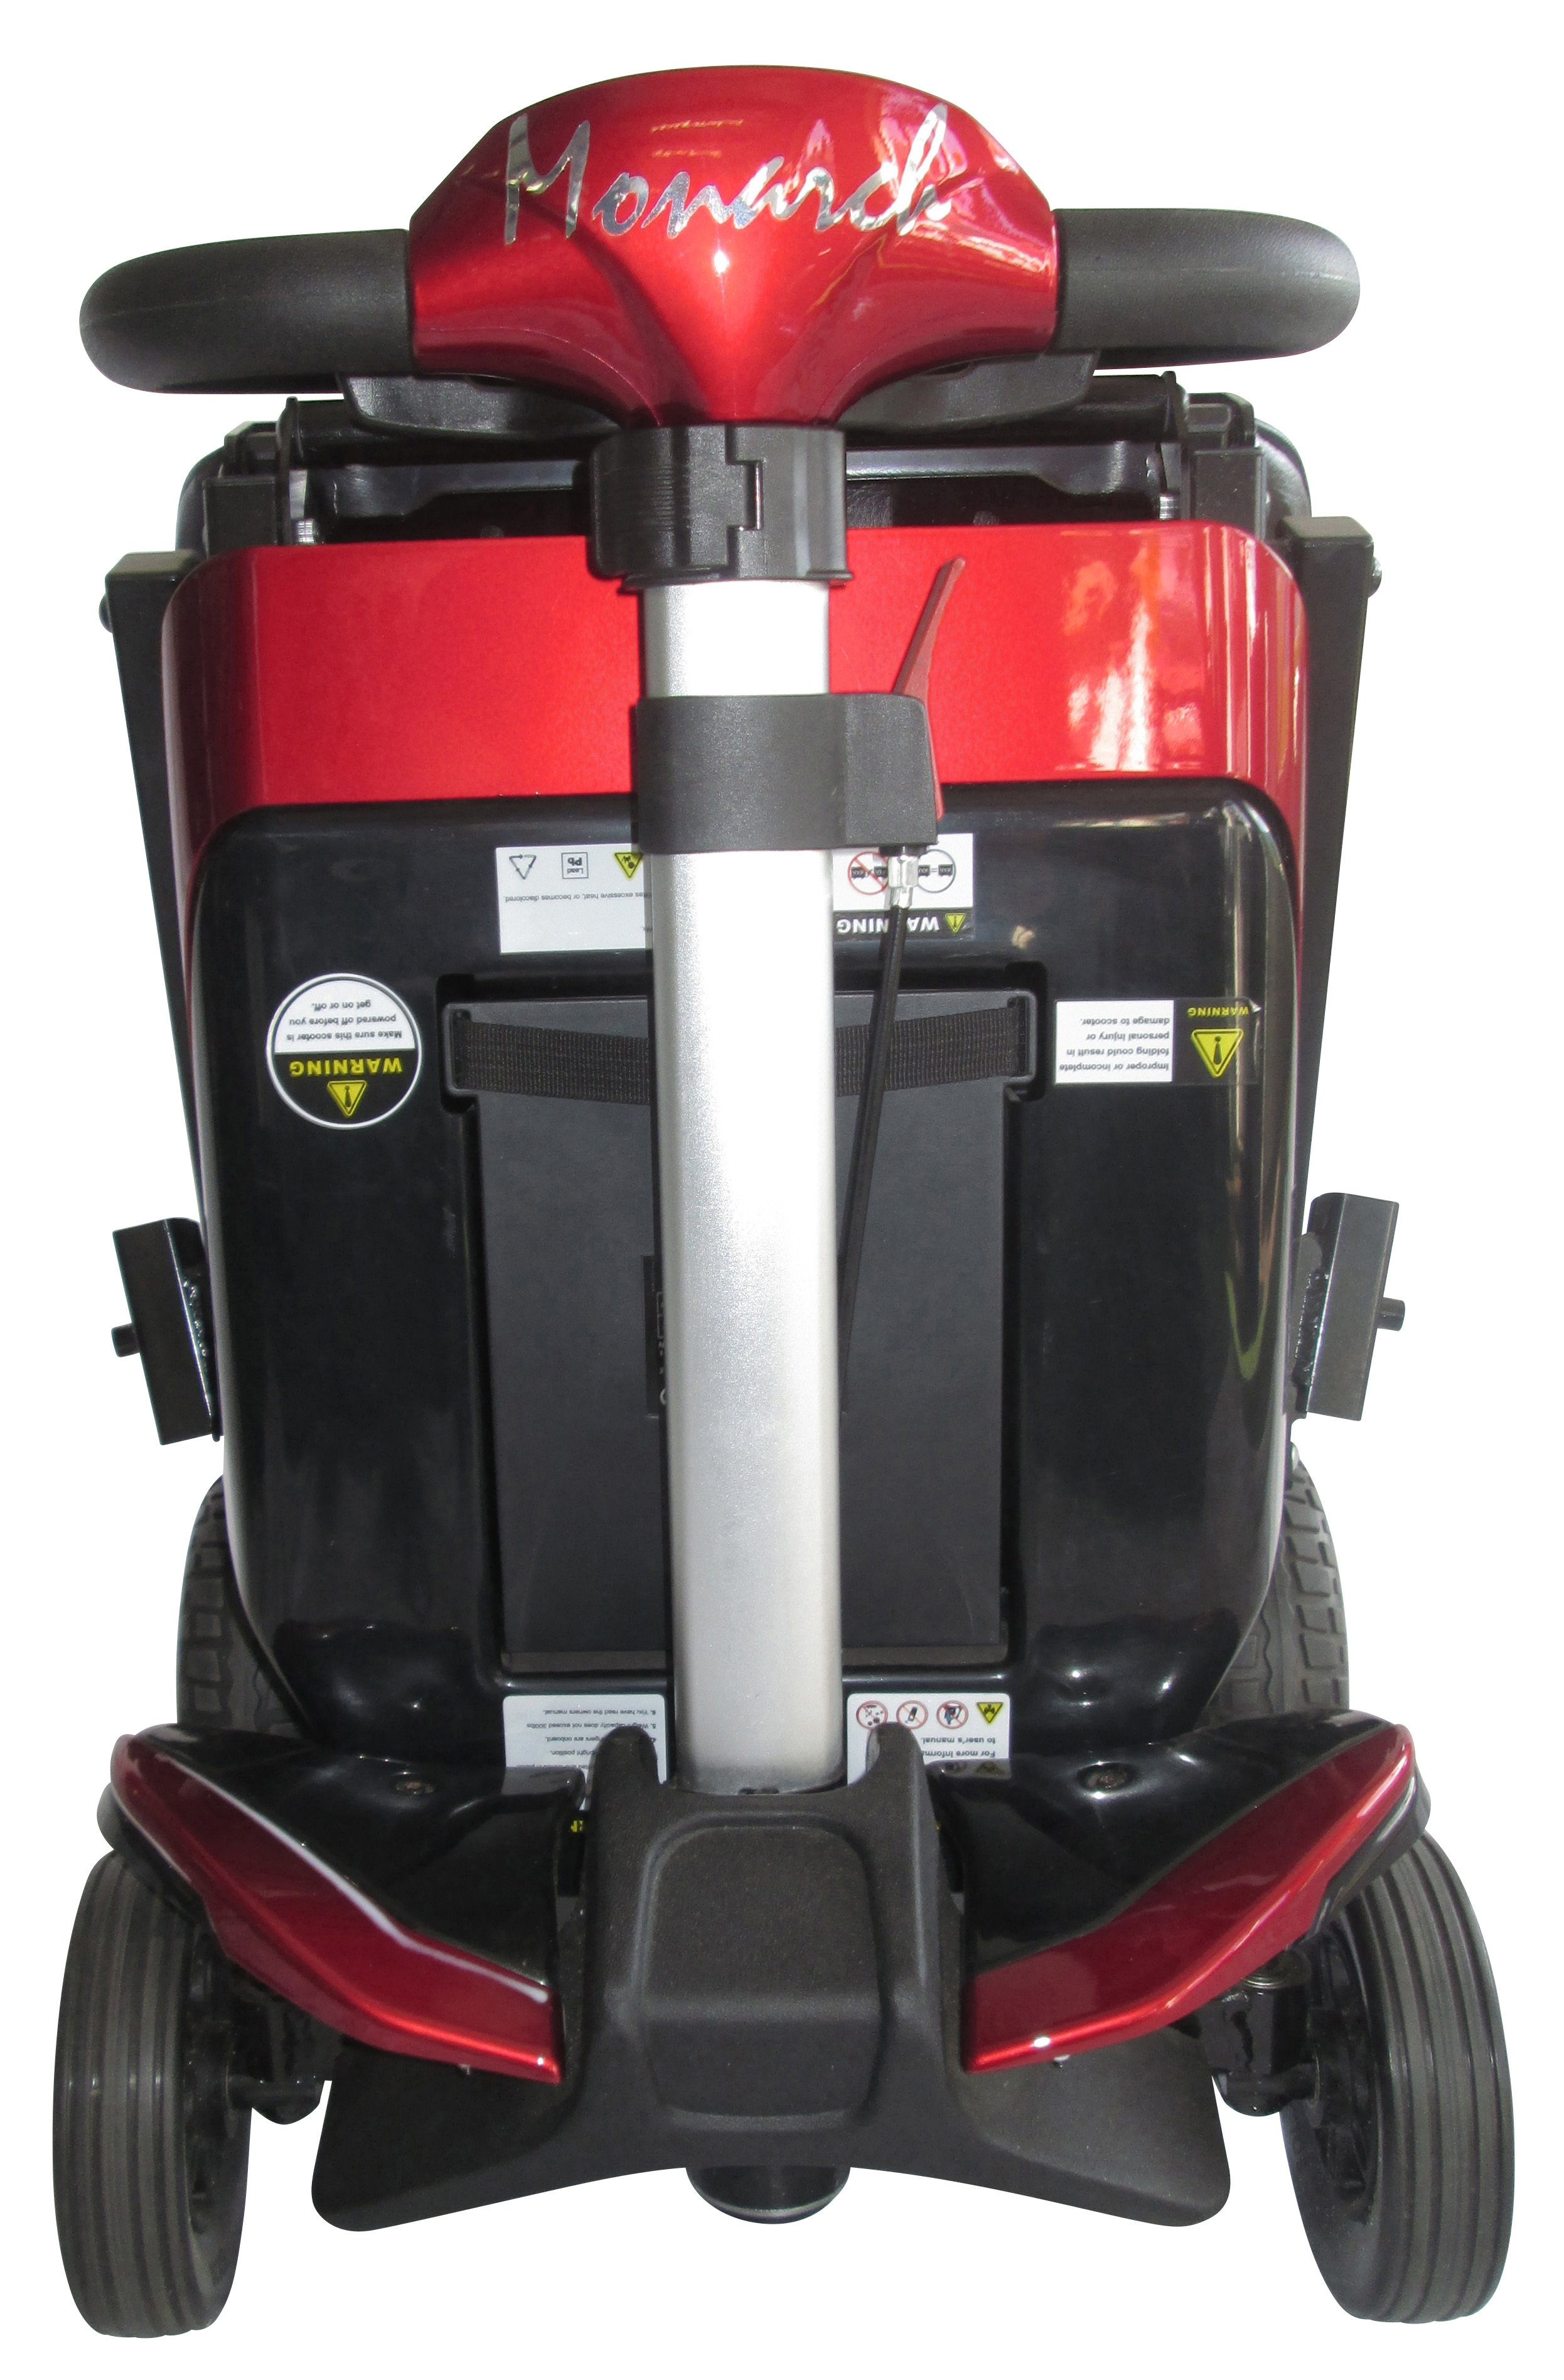 rear view of the mobility scooter